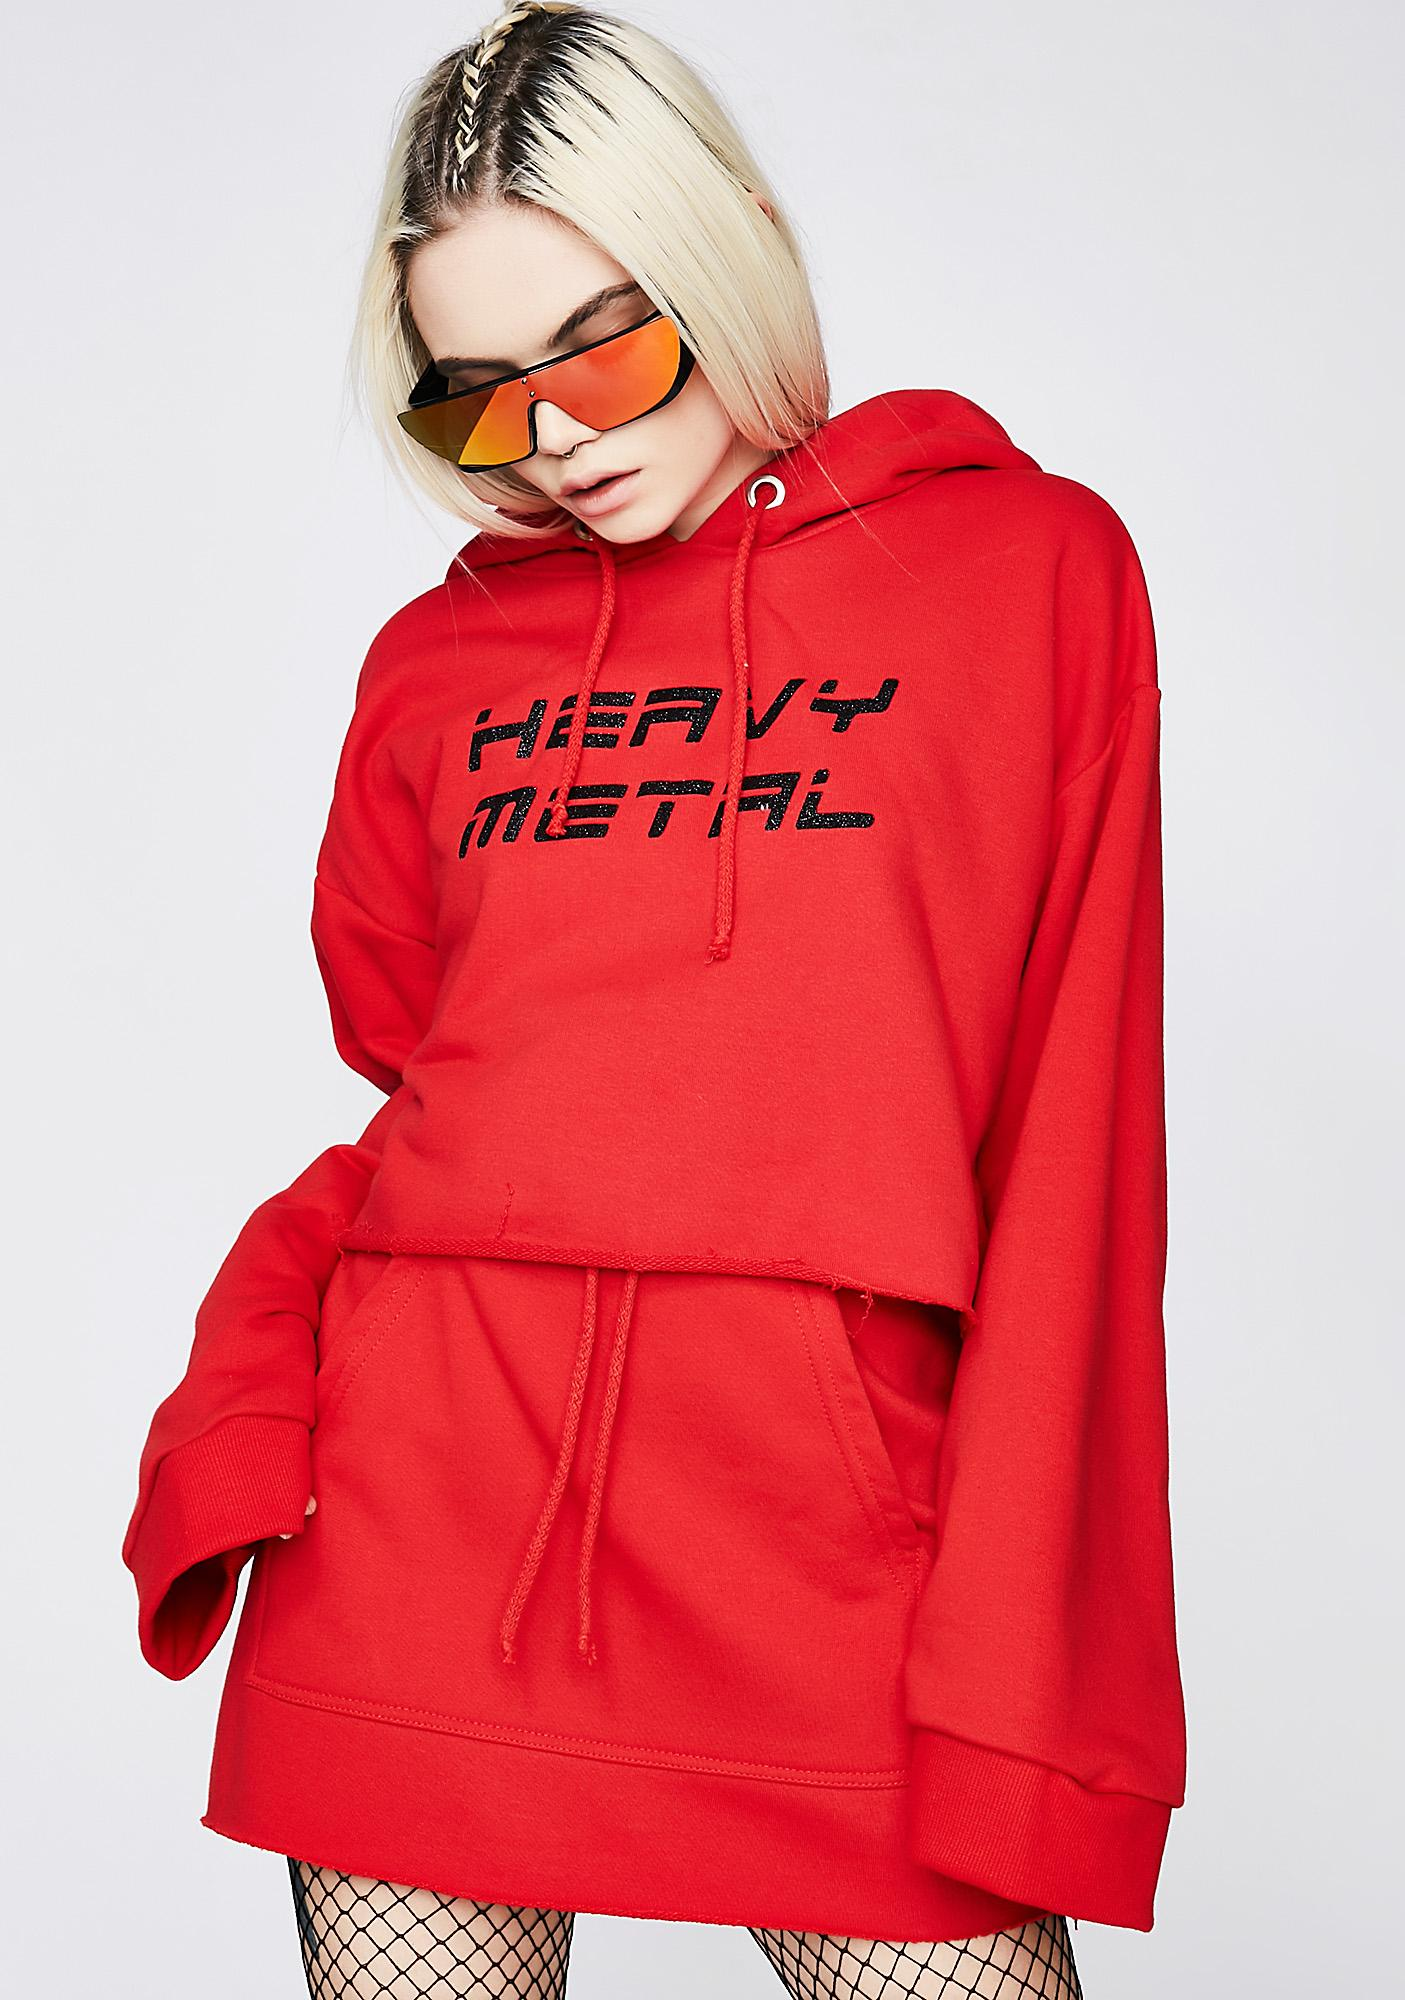 Local Heroes Heavy Metal Cropped Hoodie